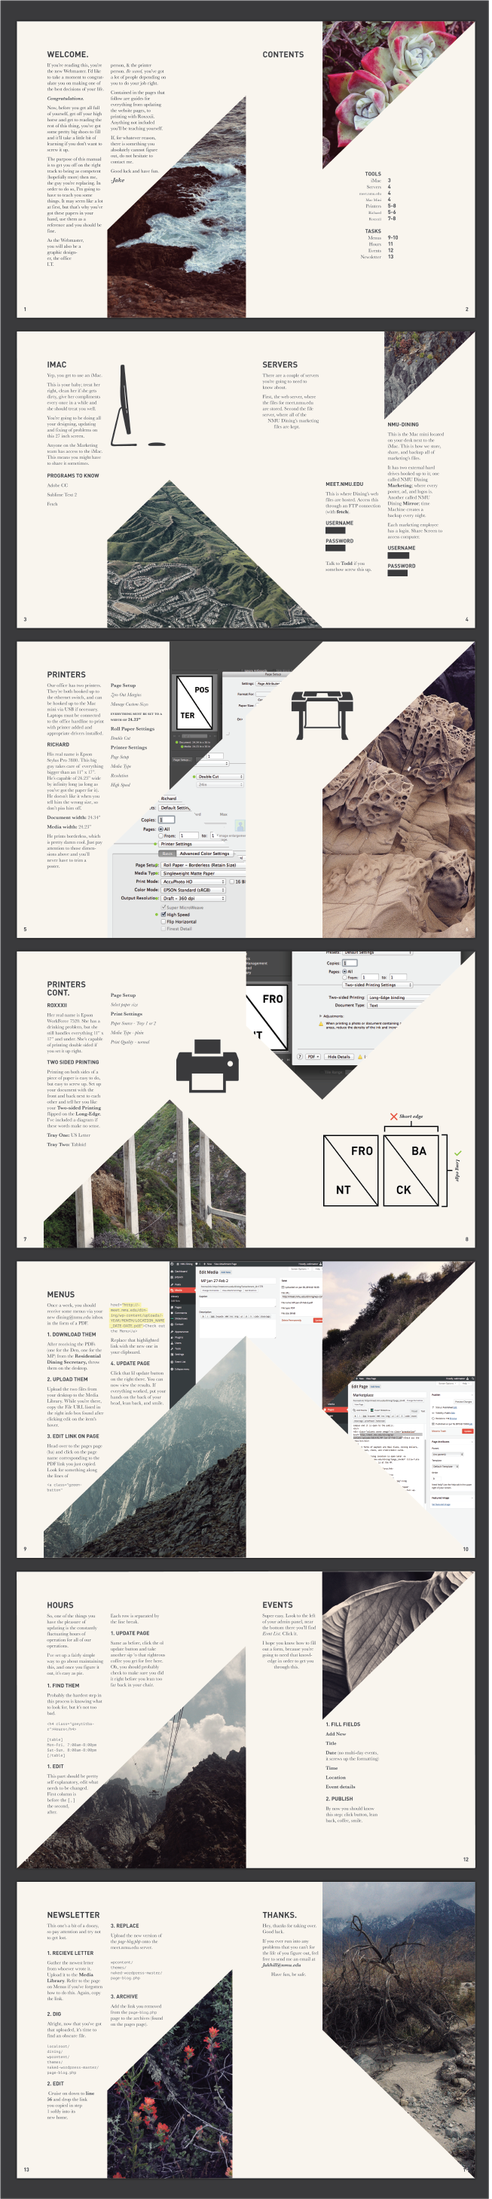 Brochure Inspiration with an Angled Impact | Brochure design ...